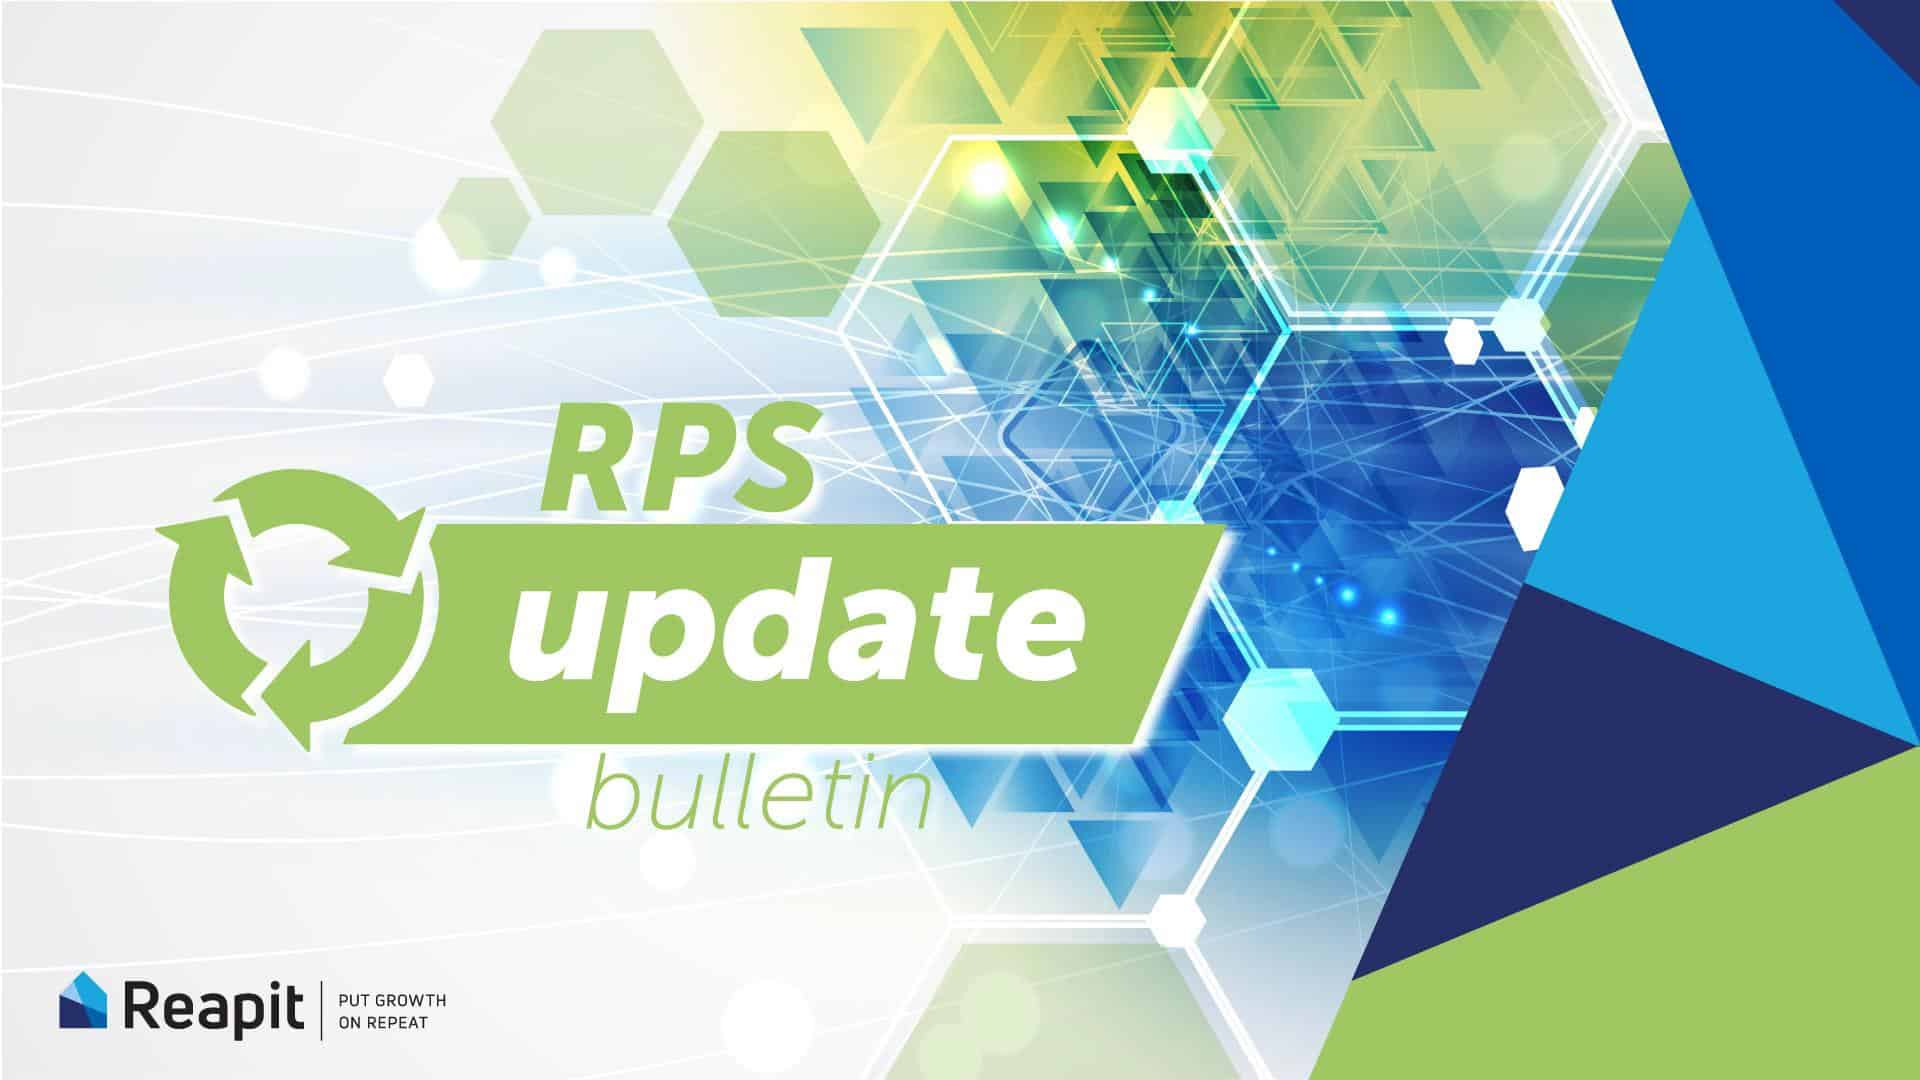 product-media-alert-rps-update-bulletin